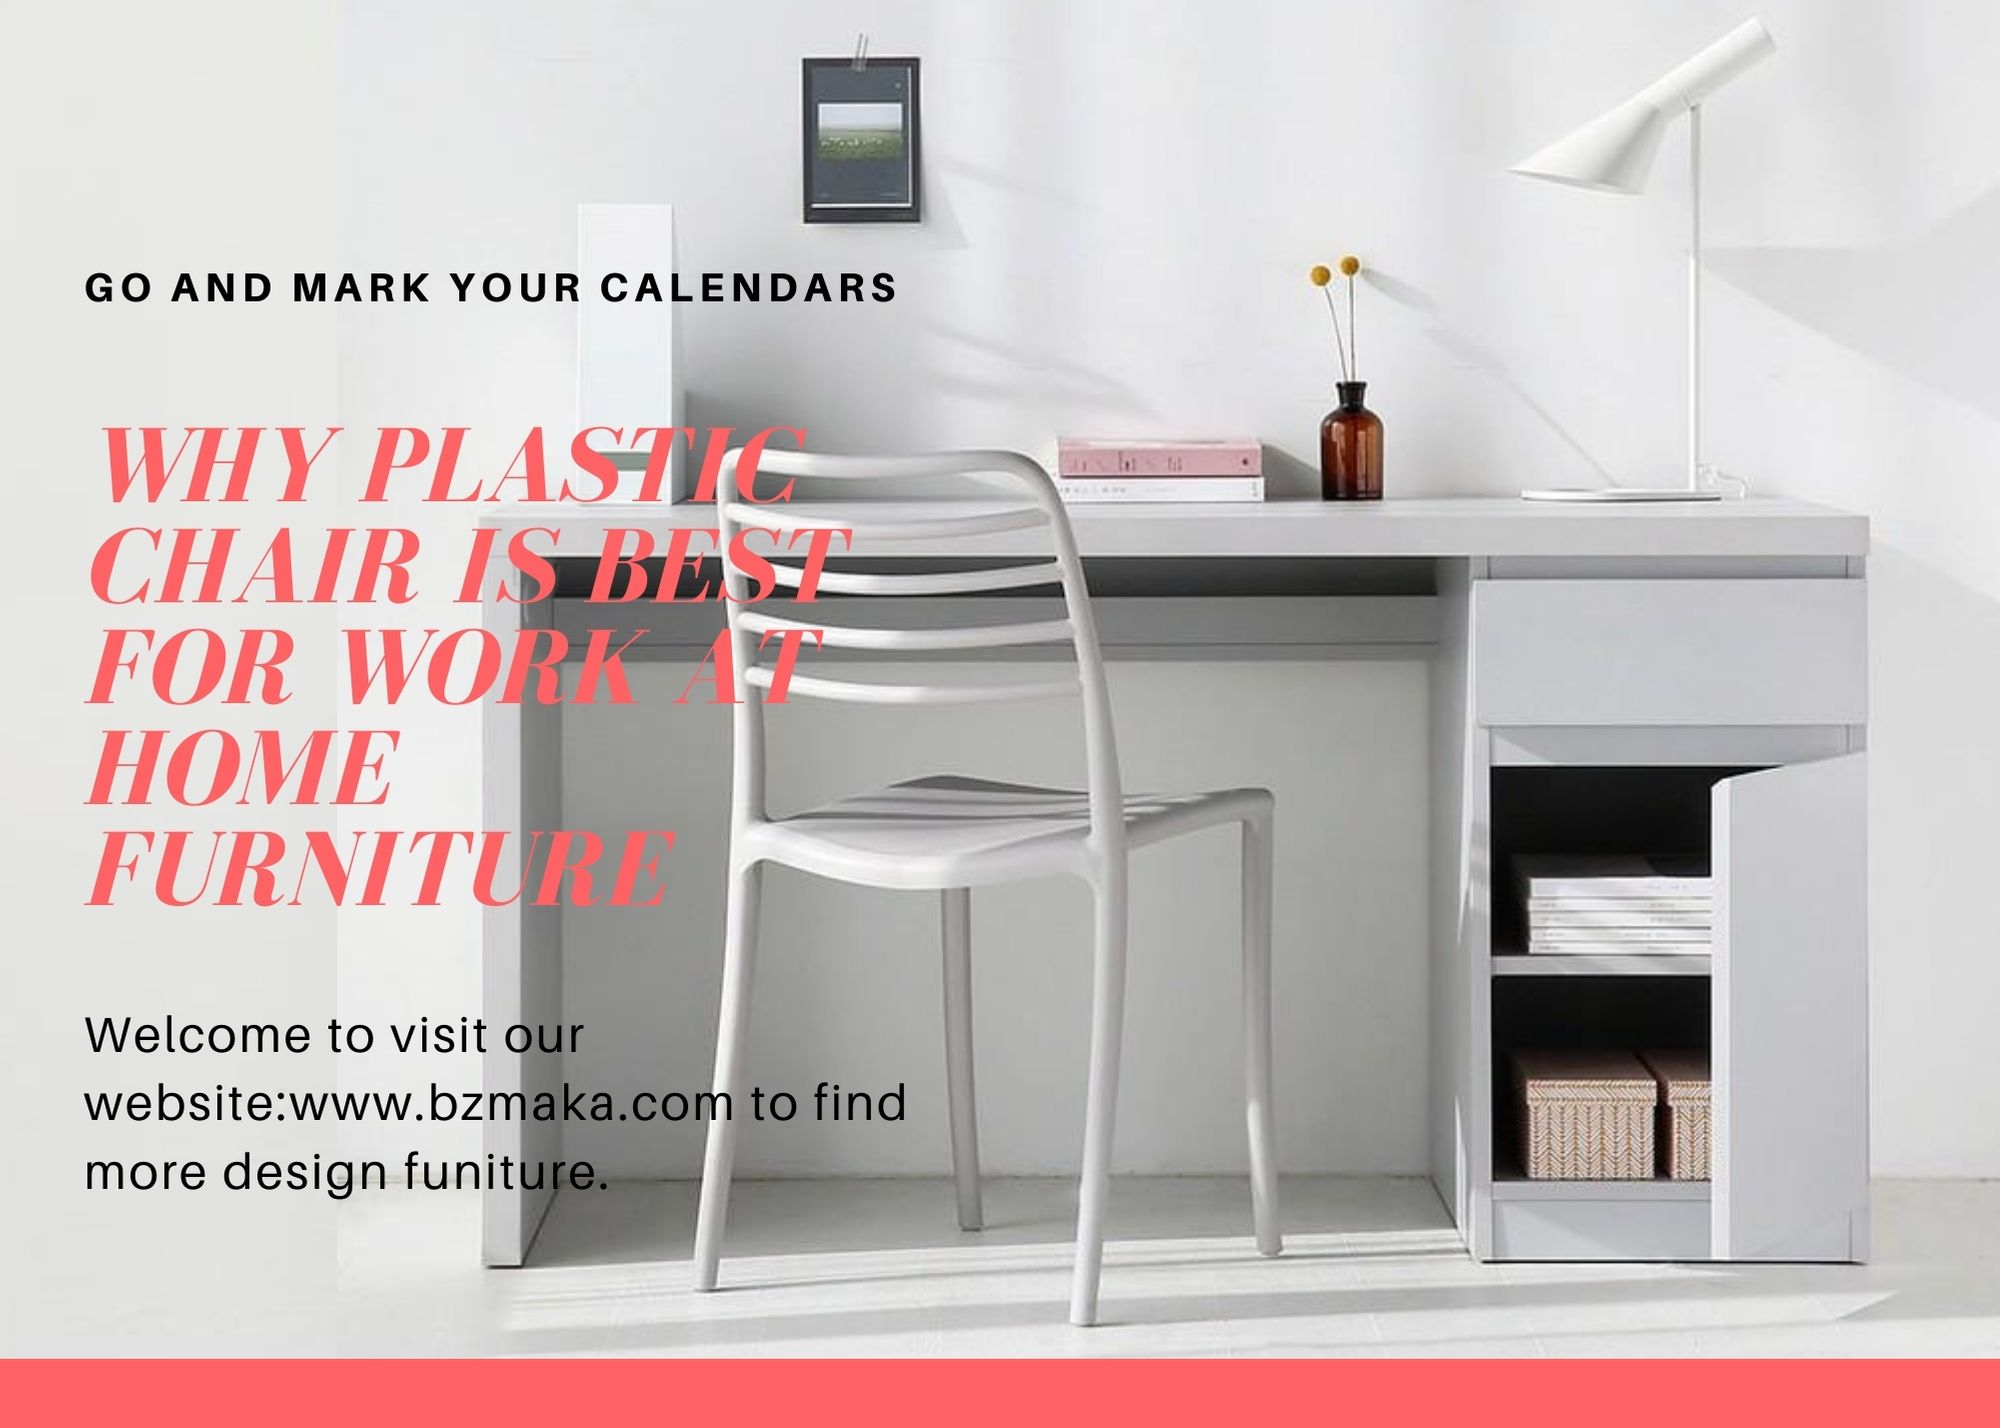 Why plastic chair is best for work at home furniture